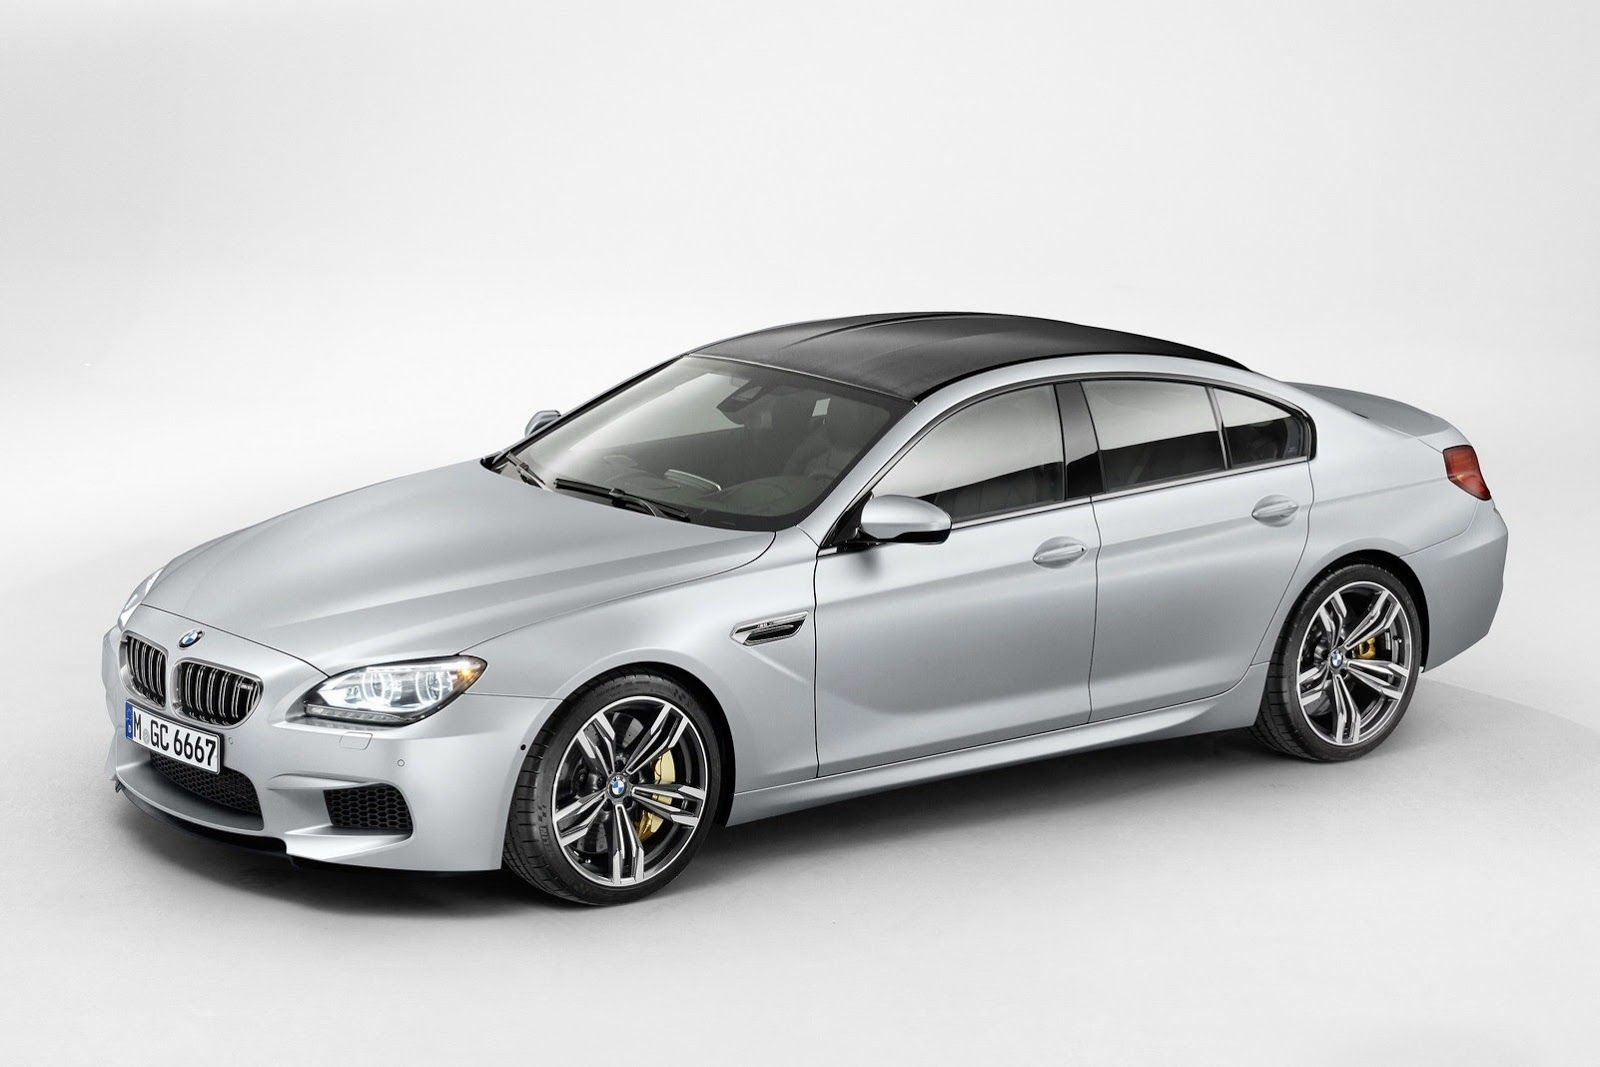 Bmw m6 gran coupe wallpapers hd